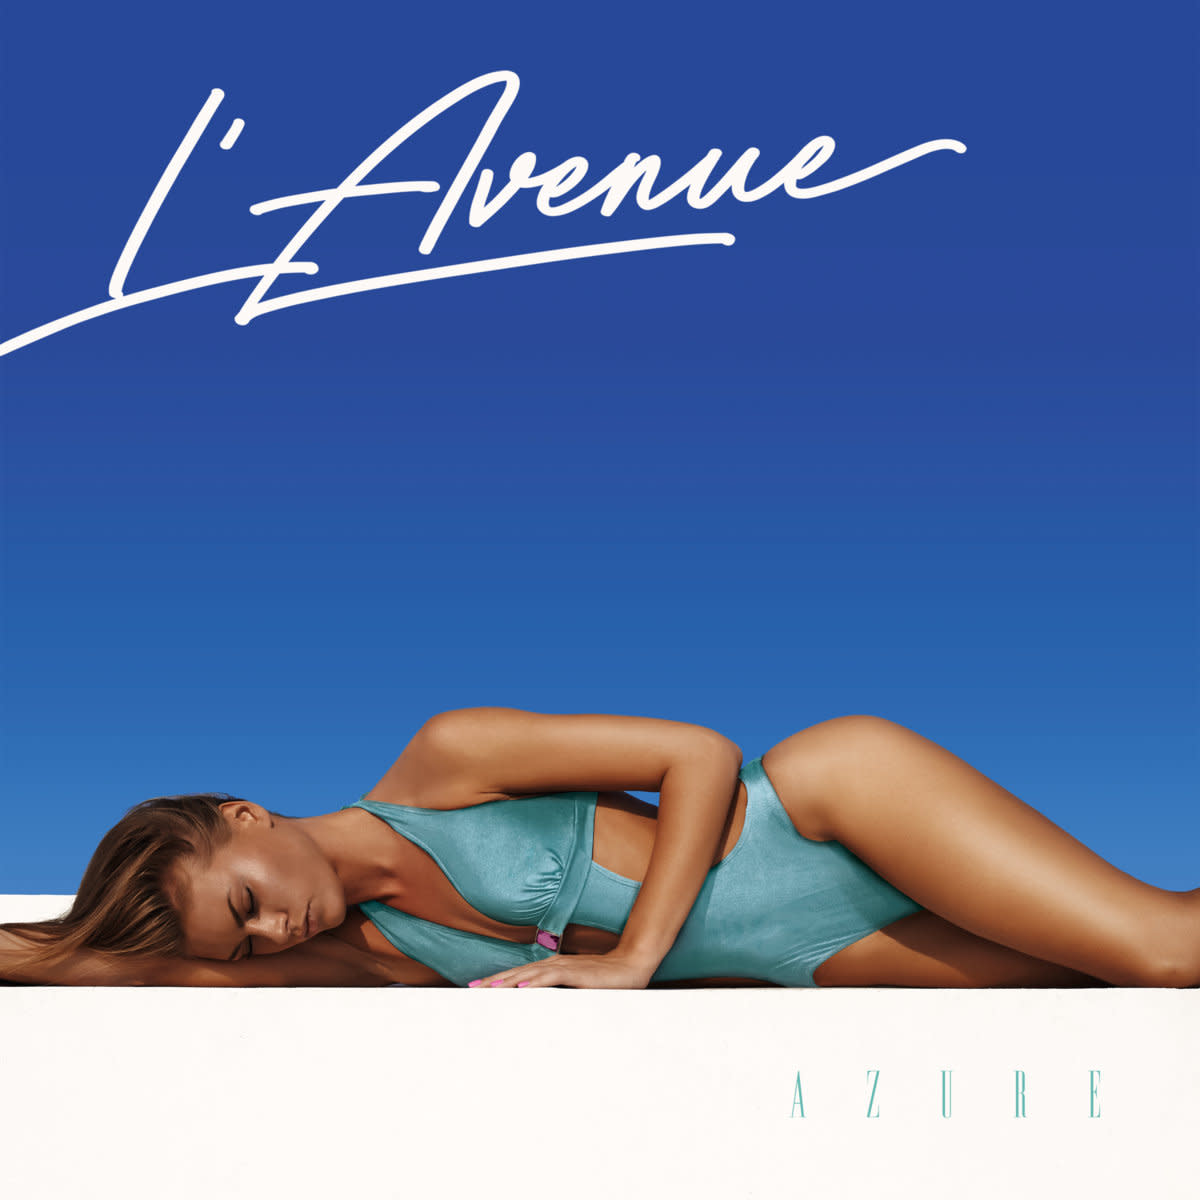 synth-ep-review-azure-by-lavenue